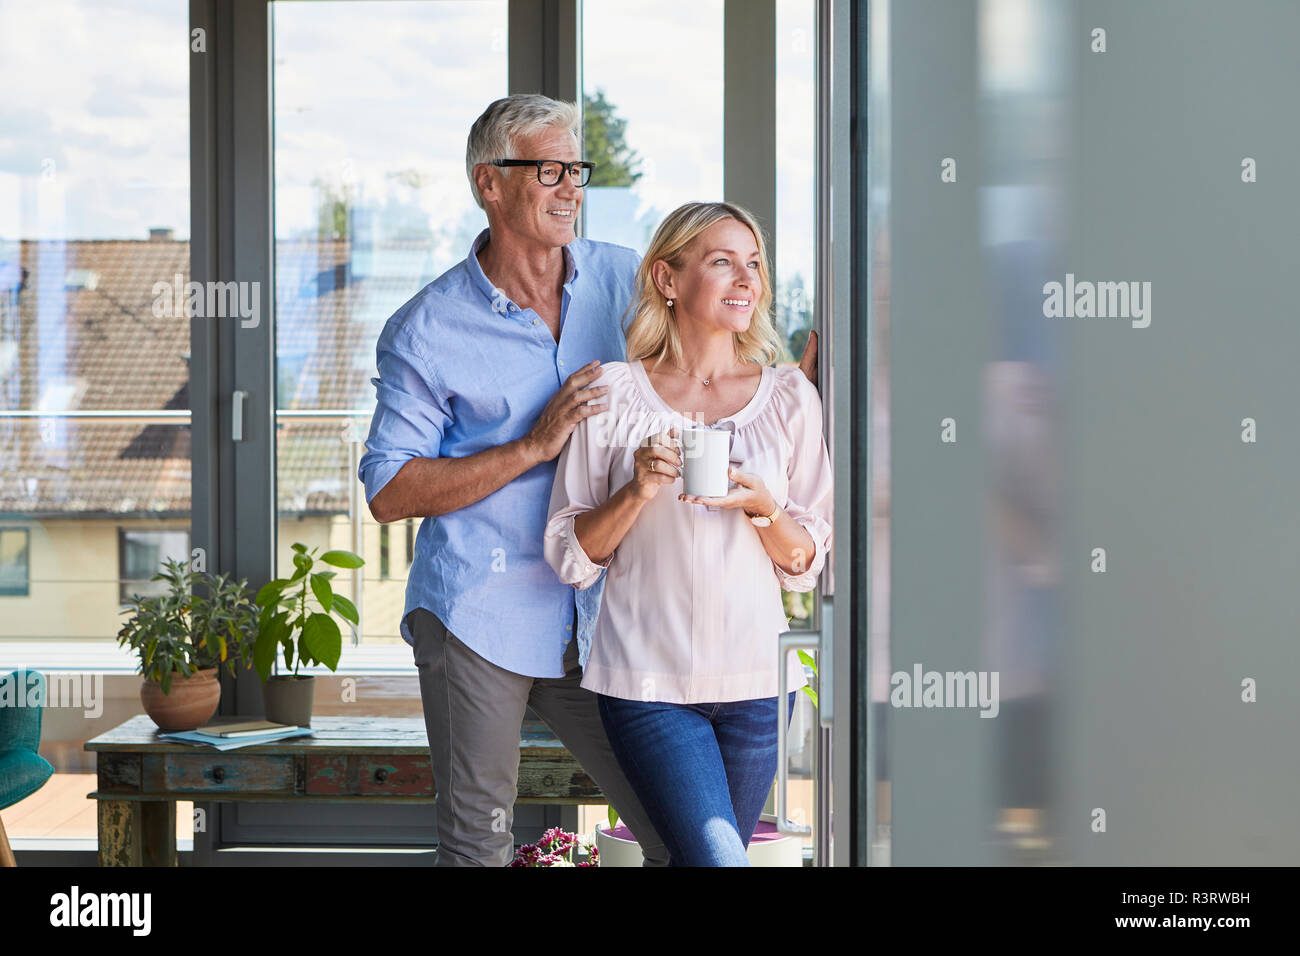 Smiling mature couple relaxing at home looking out of window Stock Photo